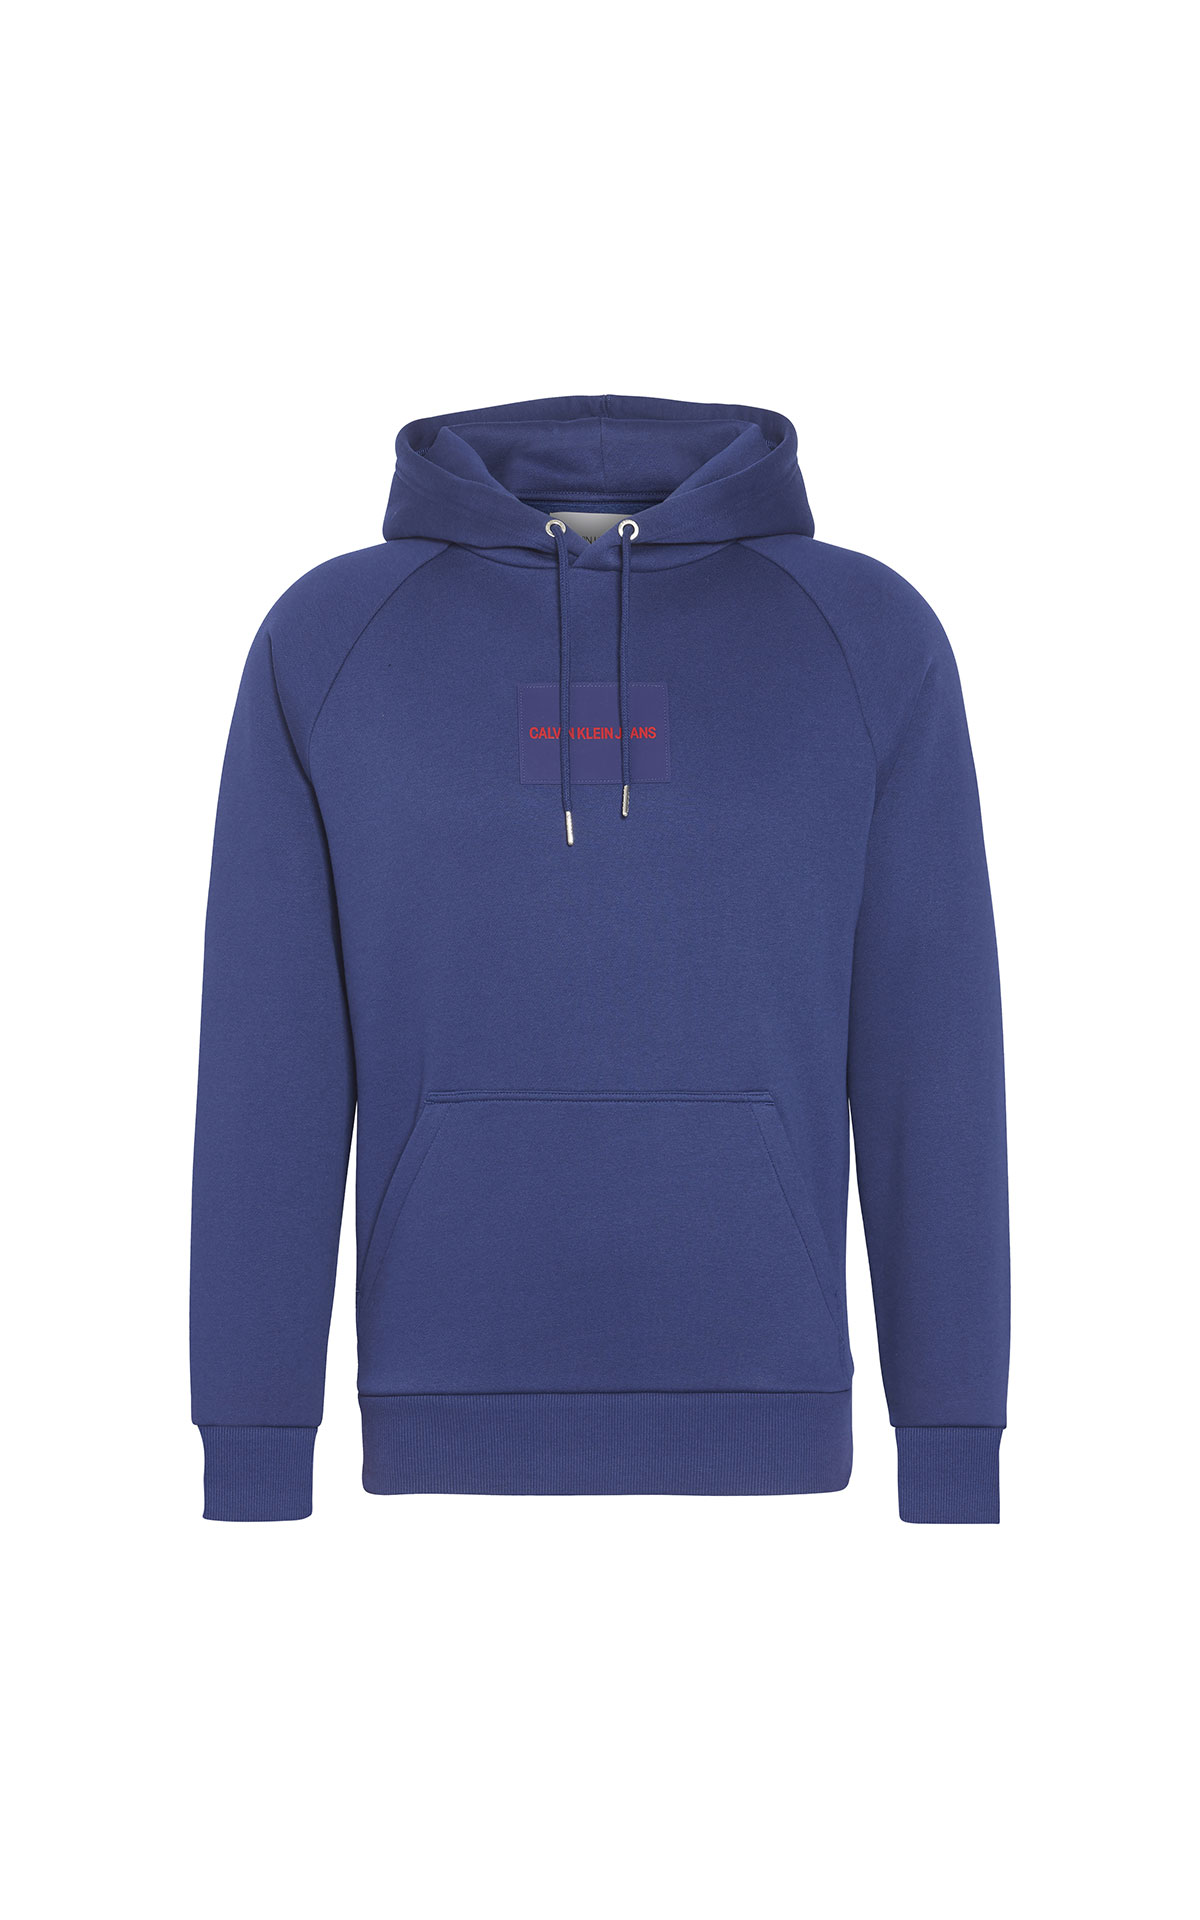 Calvin Klein Jeans Logo patch hoody medieval blue from Bicester Village